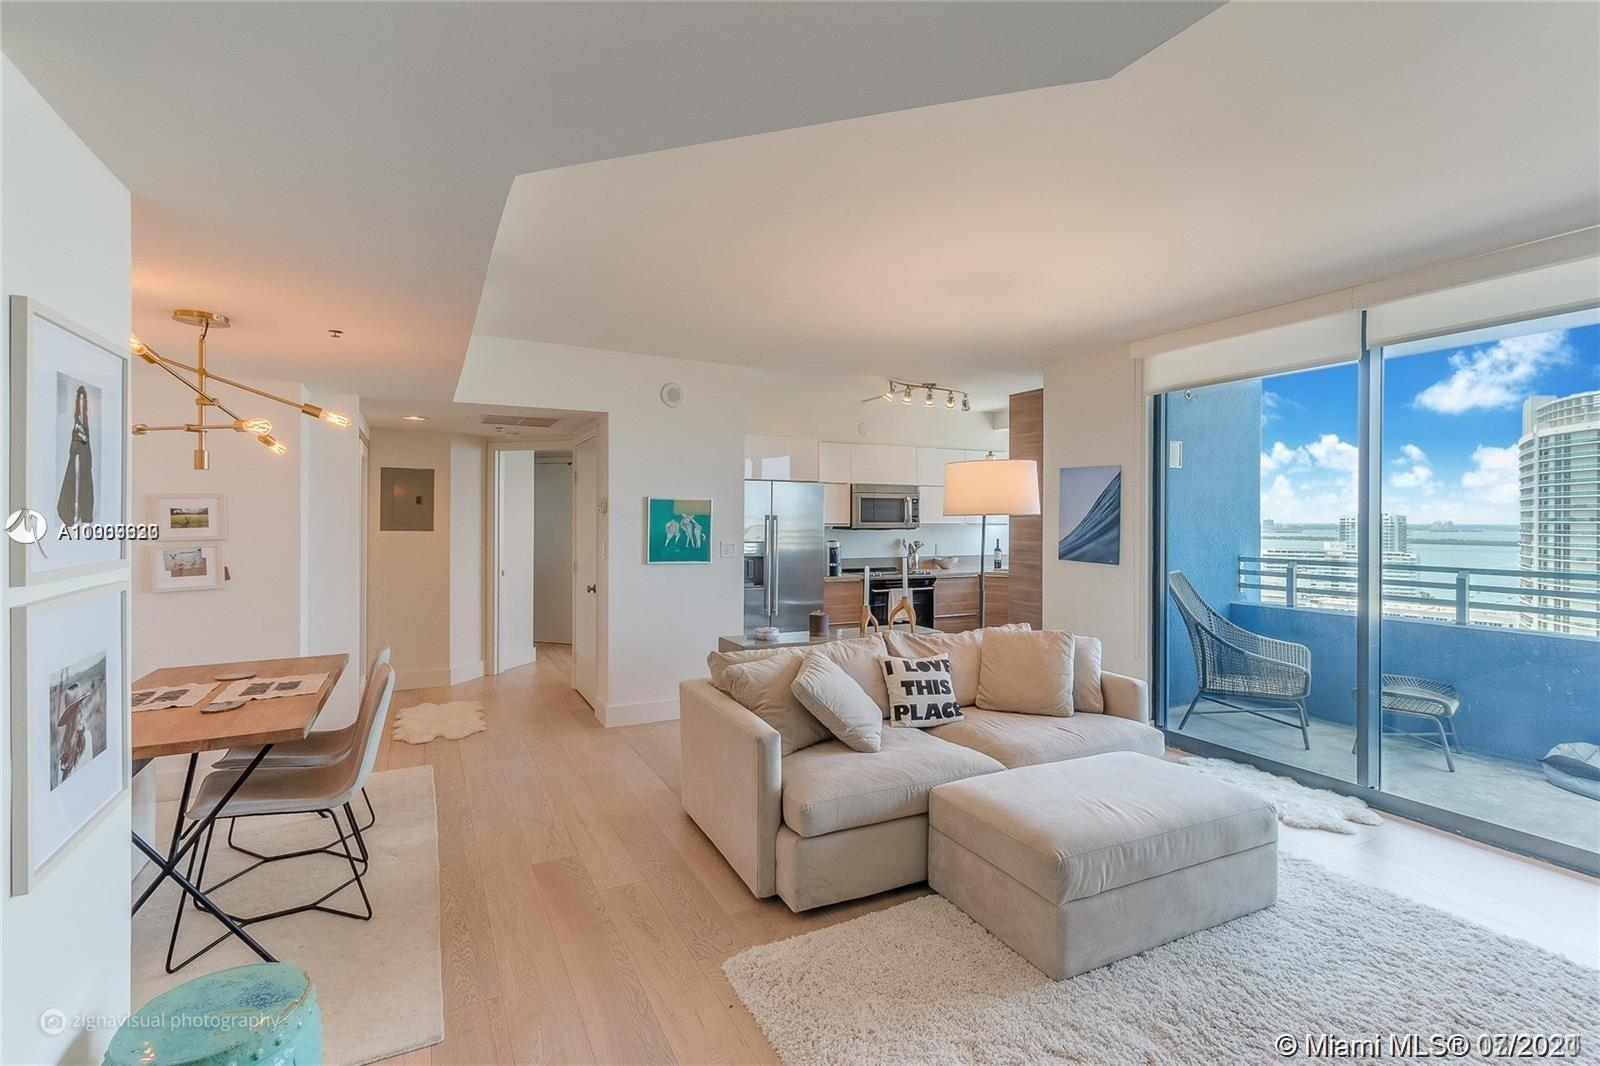 Designer model upgraded 26th floor with amazing ocean views. No detail spared! fully upgraded w/ brand new top-of-the-line appliances and kitchen cabinets, new wood floors, renovated bathrooms and reconfigured walls. Peaceful West Ave location, walking distance to restaurants, Lincoln Road, Whole Foods, and much more. This is a 24-hour full-service building. amenities include pool, gym, yoga room, tennis, volleyball & bayfront BBQ.